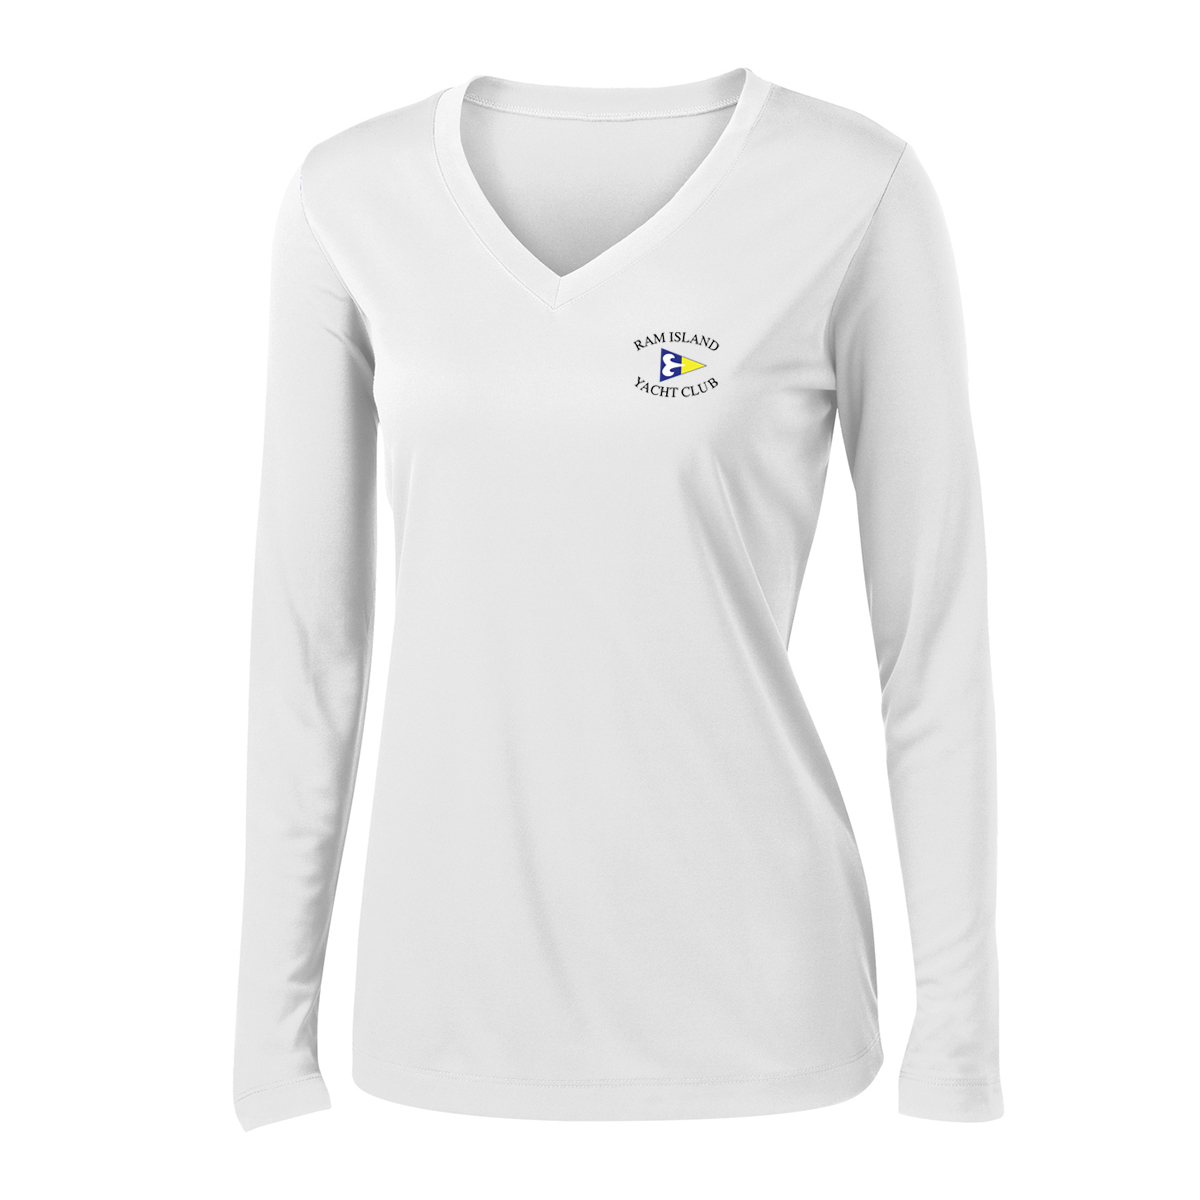 RIYC - Women's L/S TECH TEE - LEFT CHEST ONLY